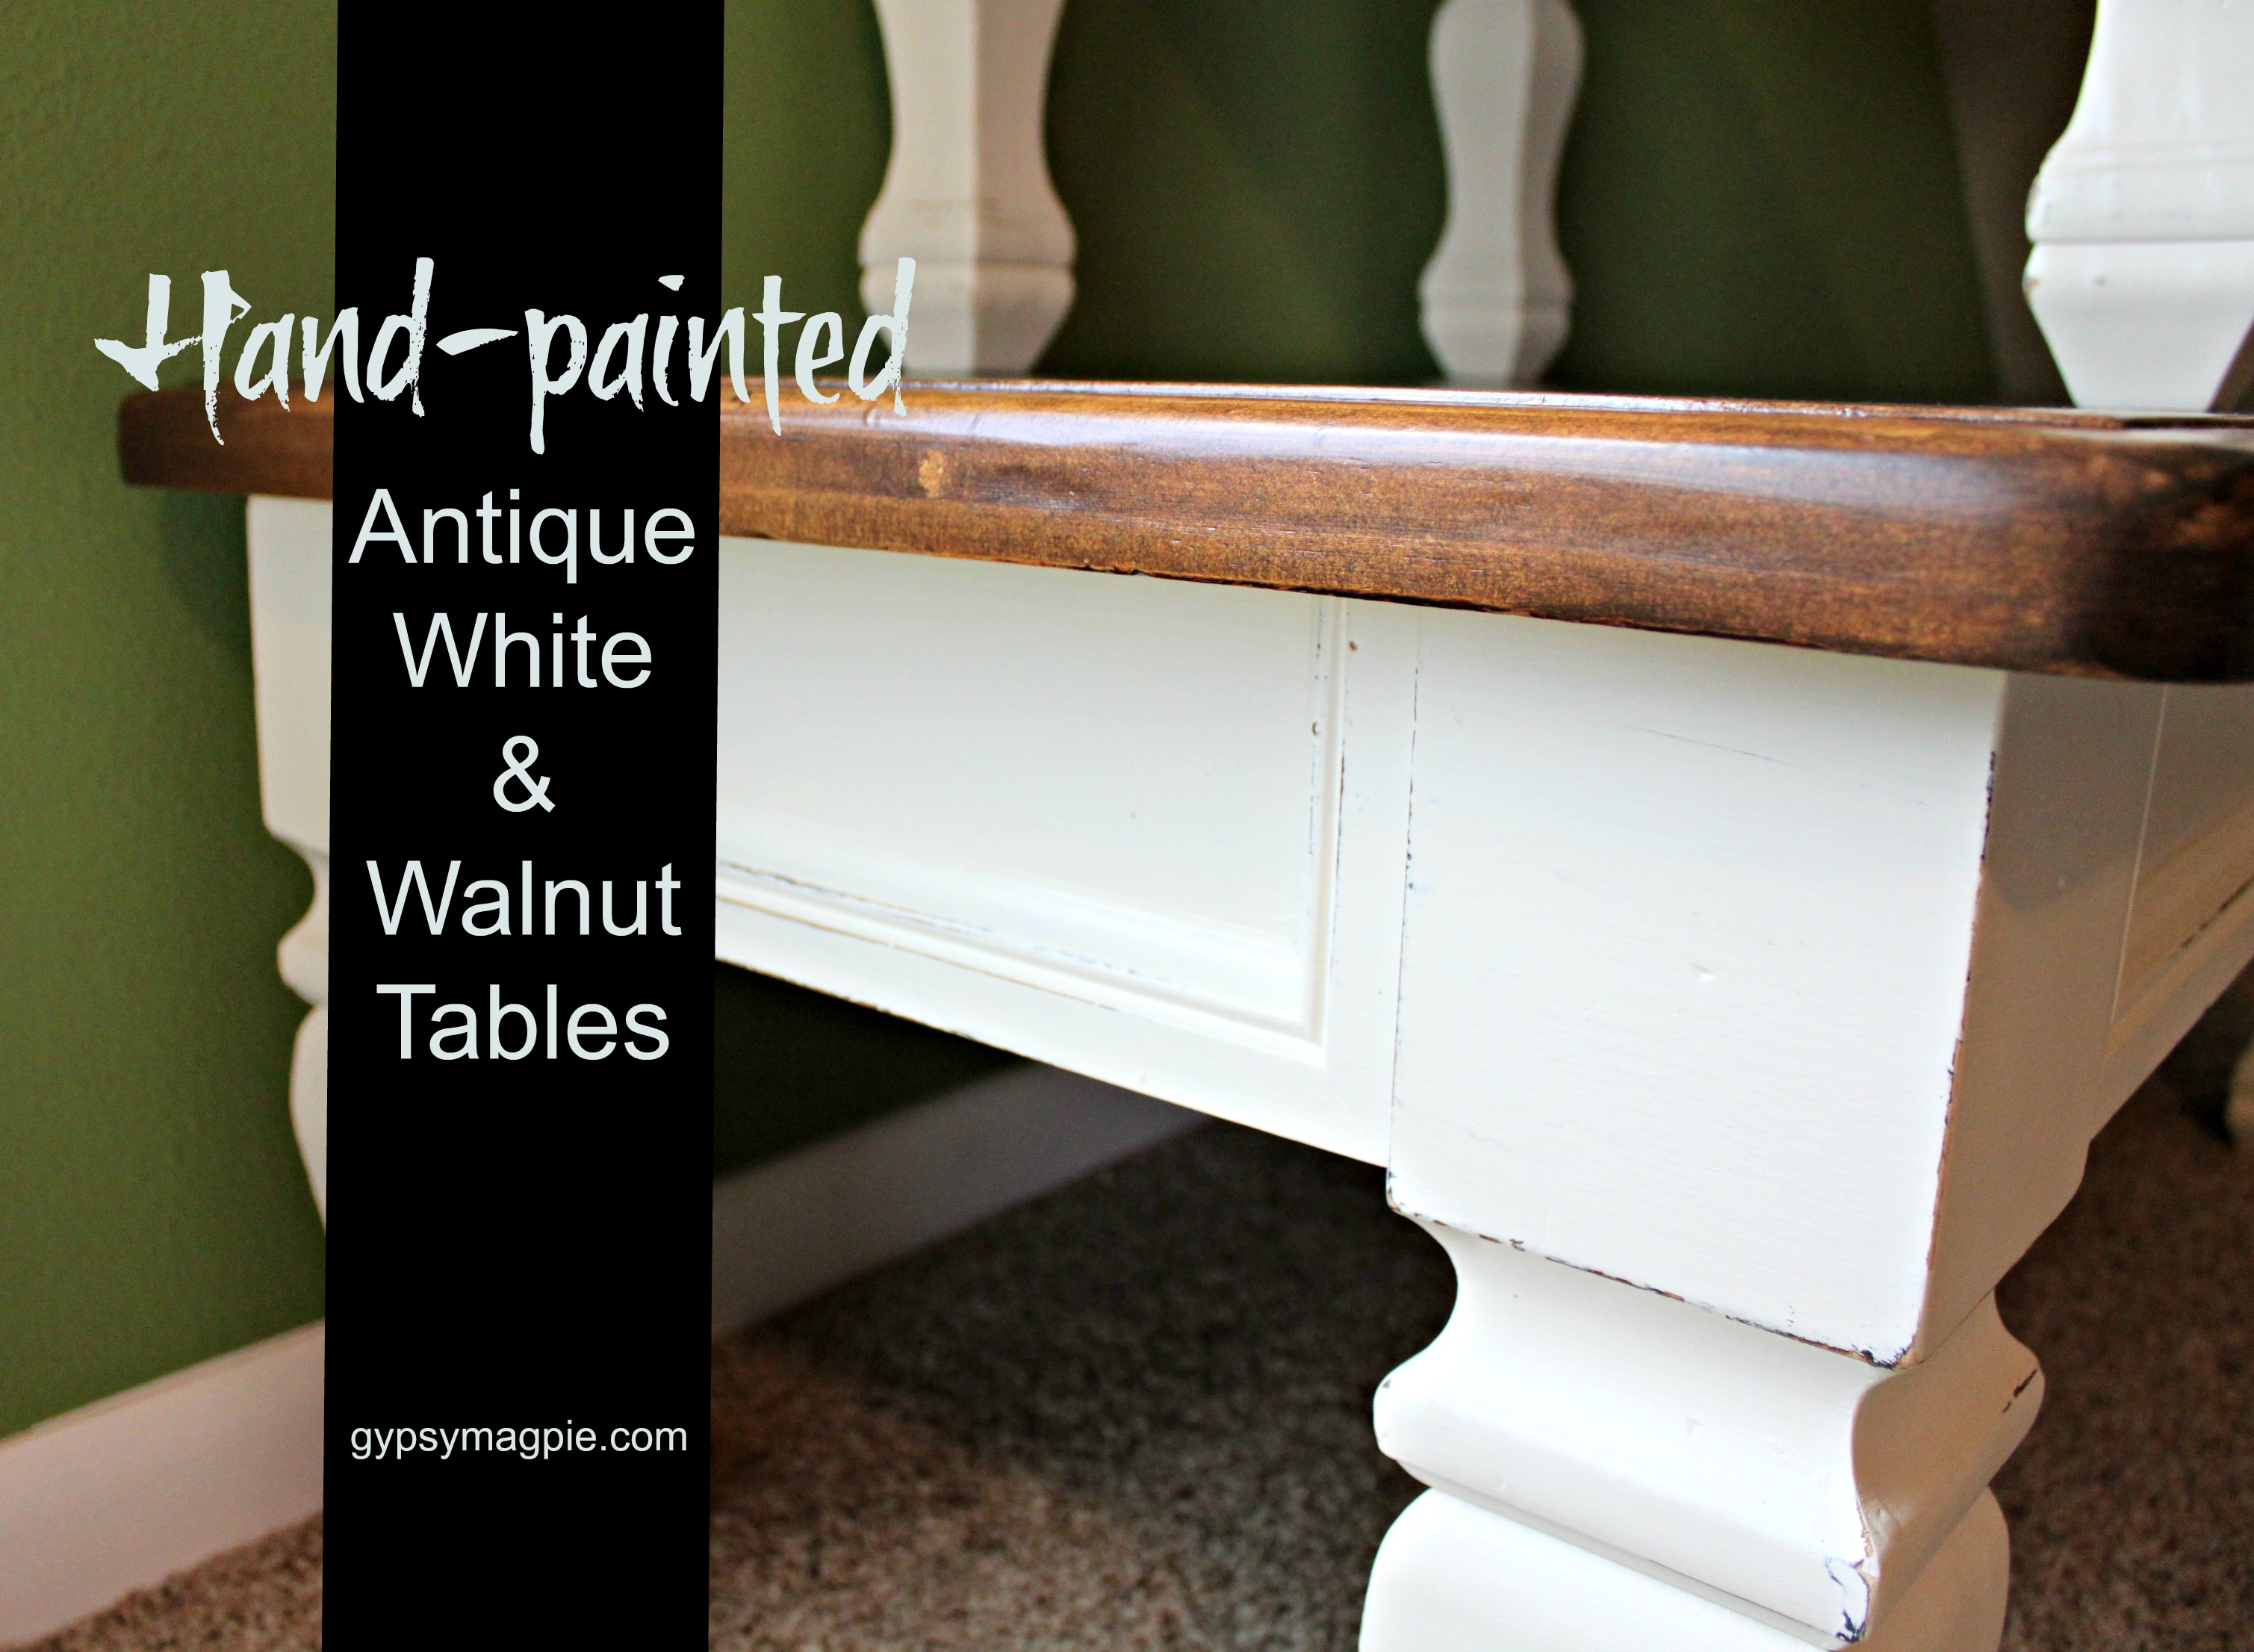 Handpainted antique white and walnut tables, given a new life and a little love {Gypsy Magpie}